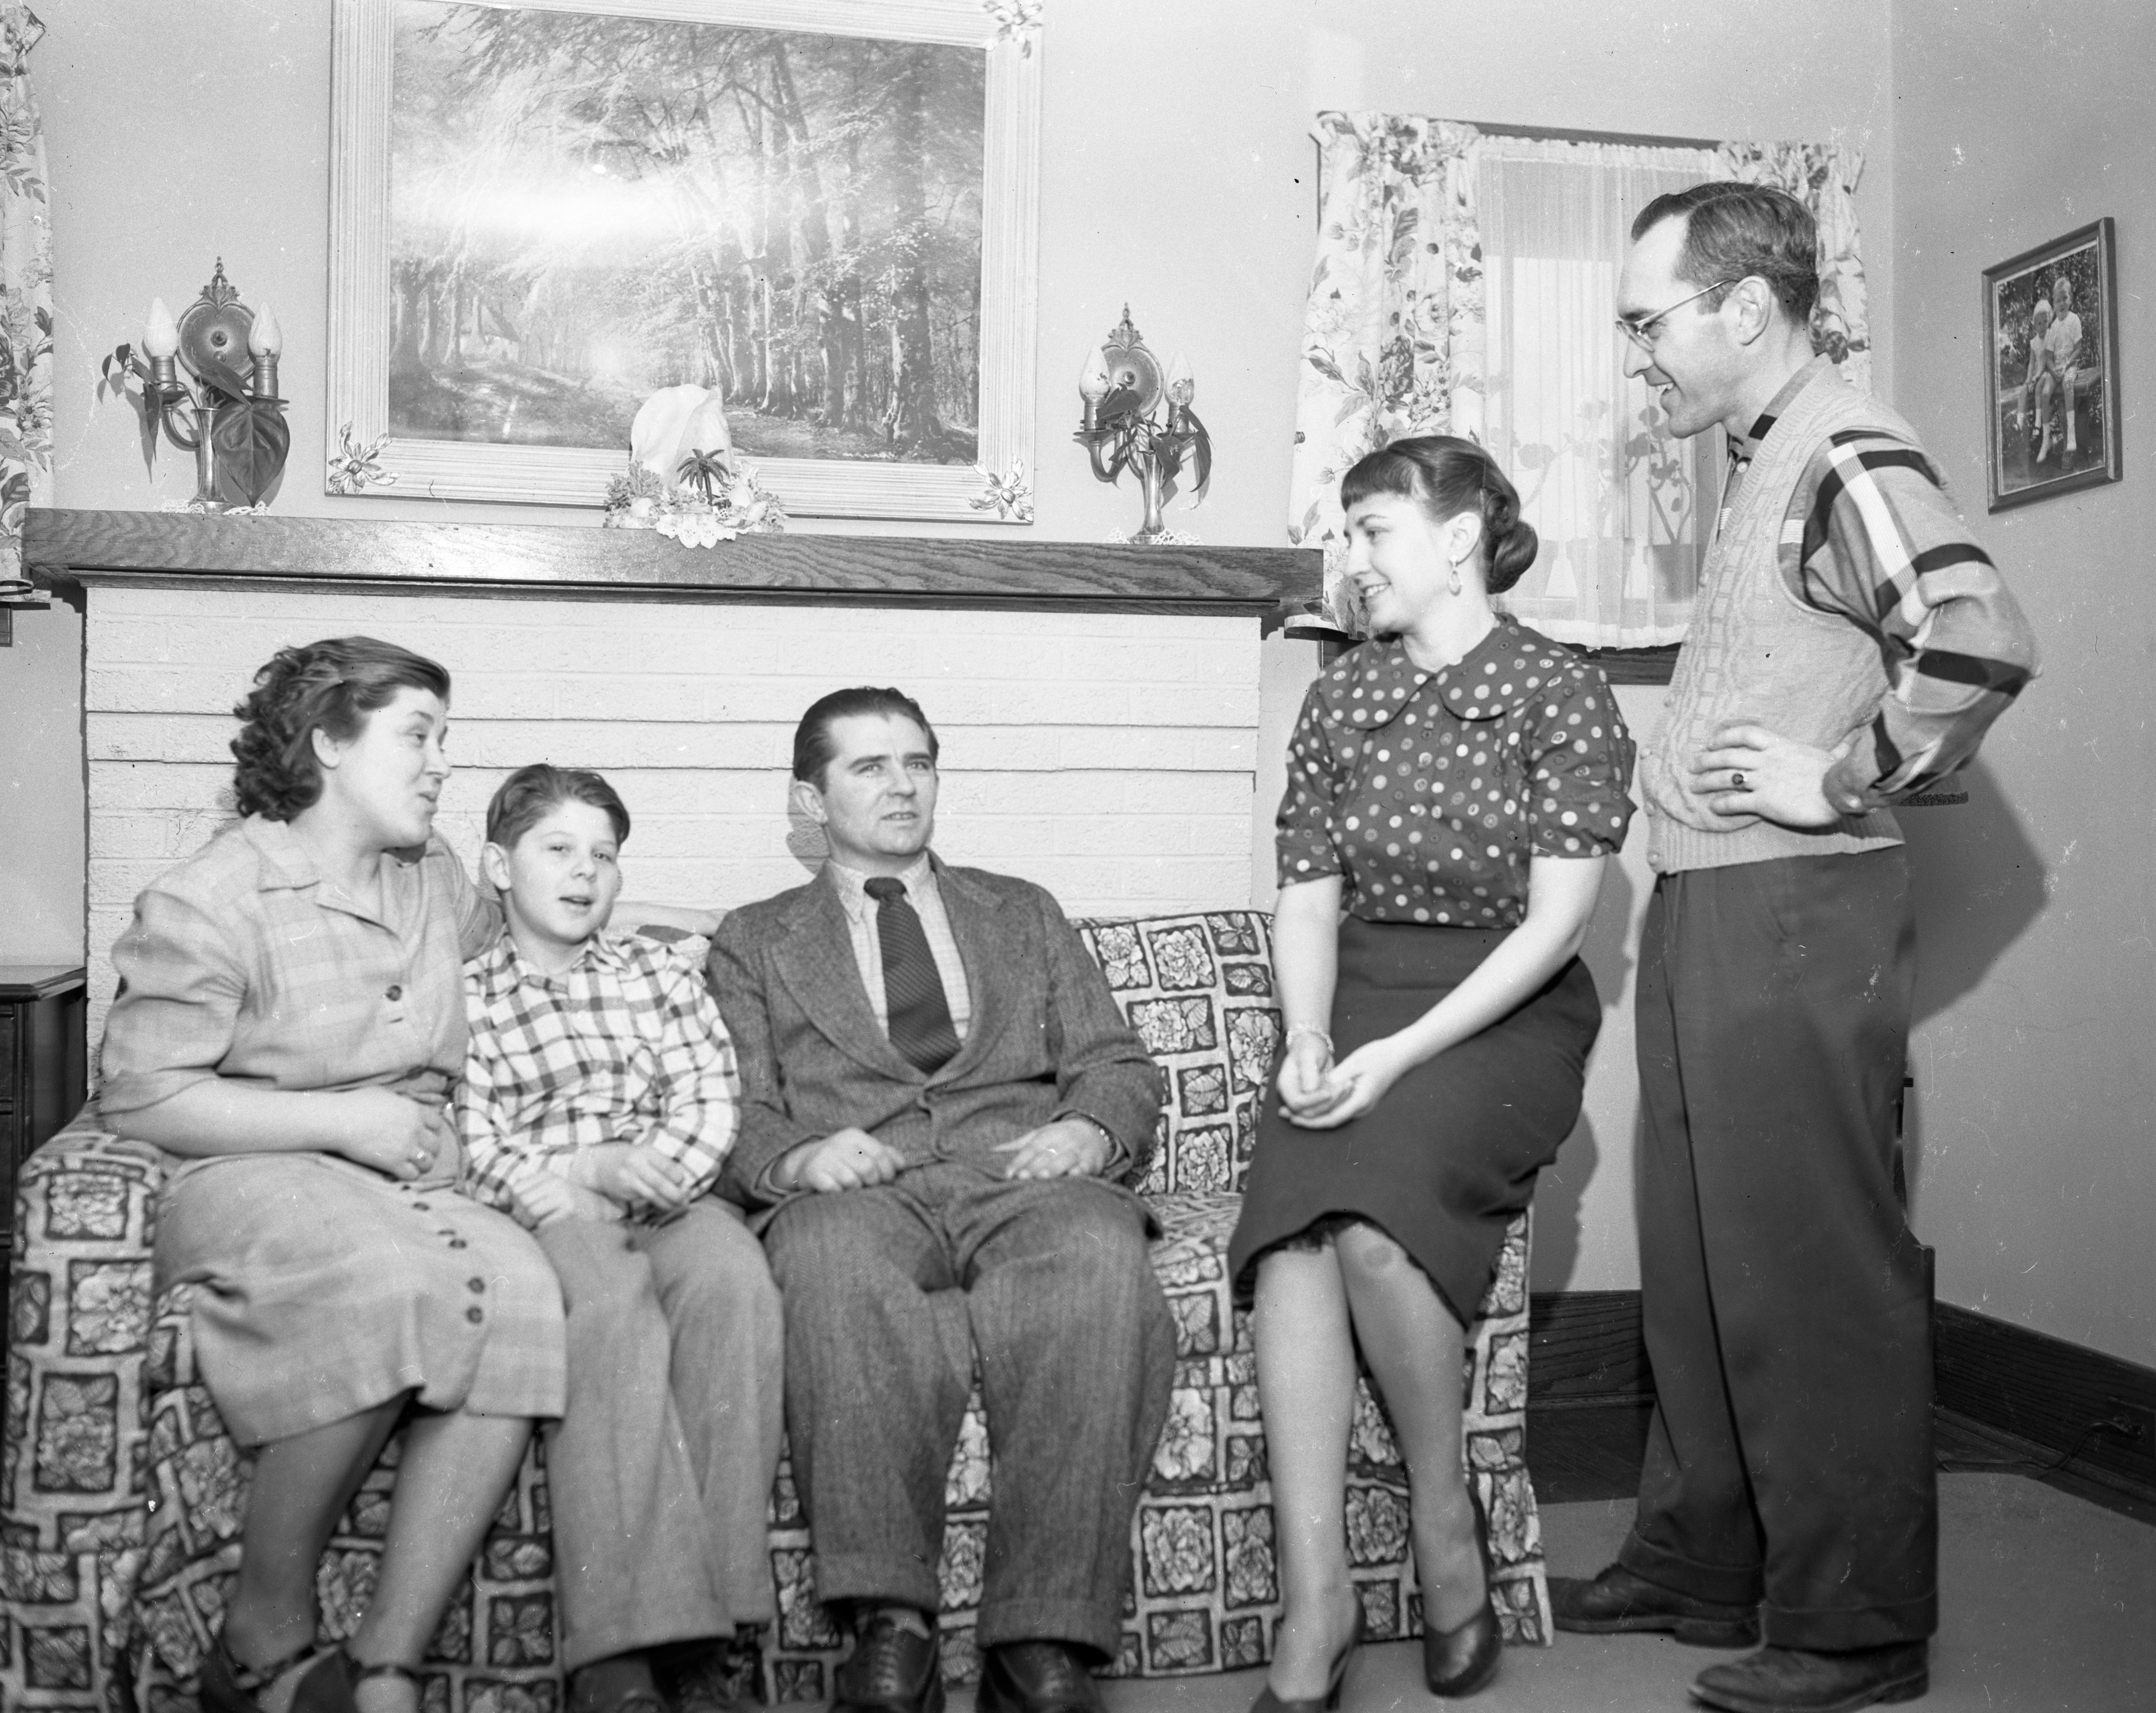 Hungarian Refugee Family Welcomed To Ann Arbor, February 1957 image